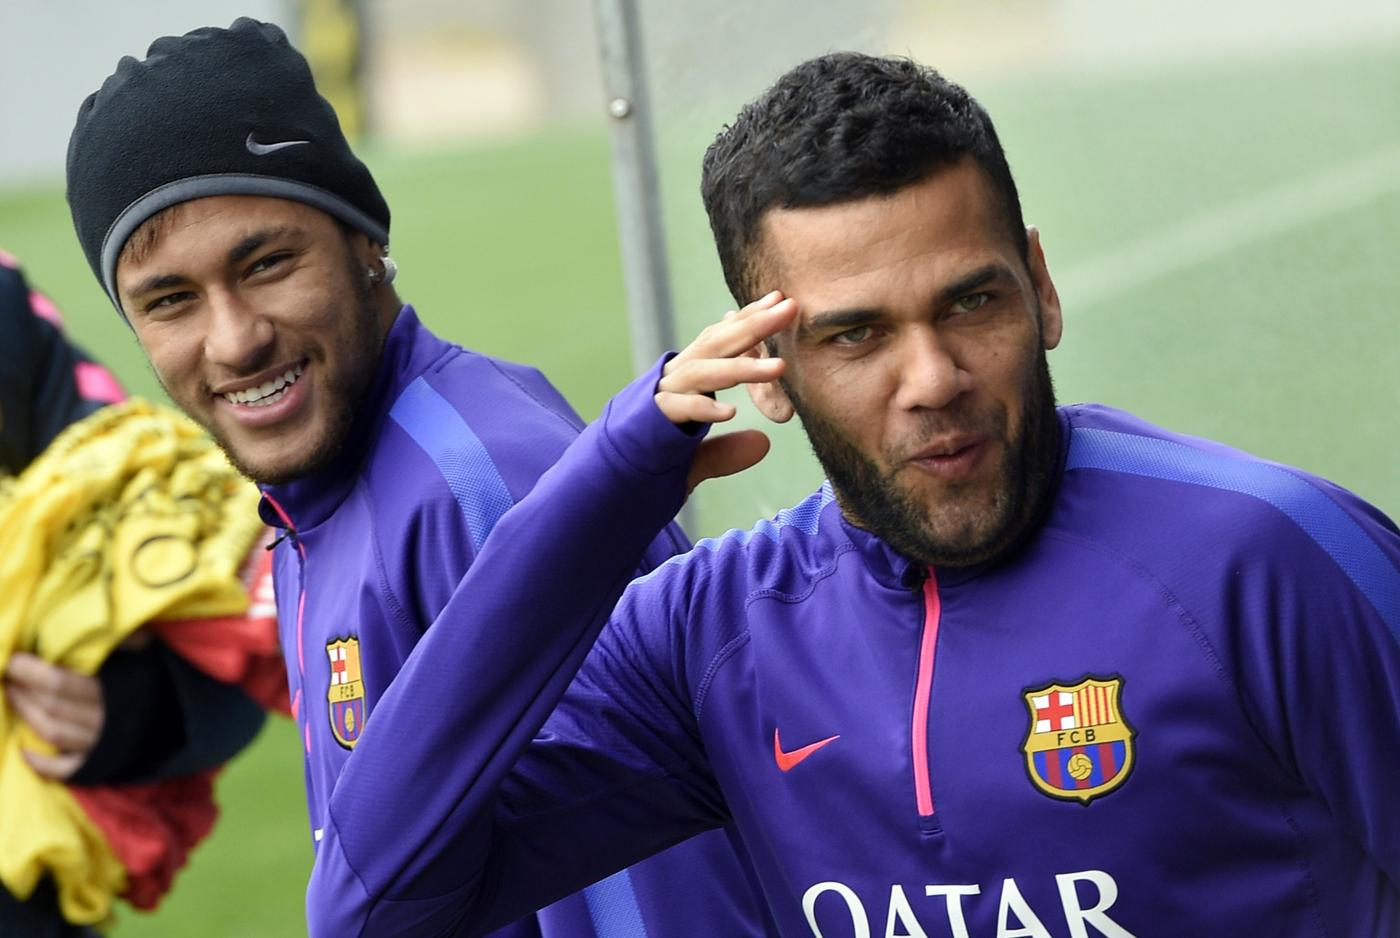 Manchester United in pole position for Dani Alves transfer as Paris Saint-Germain end interest in Barcelona star